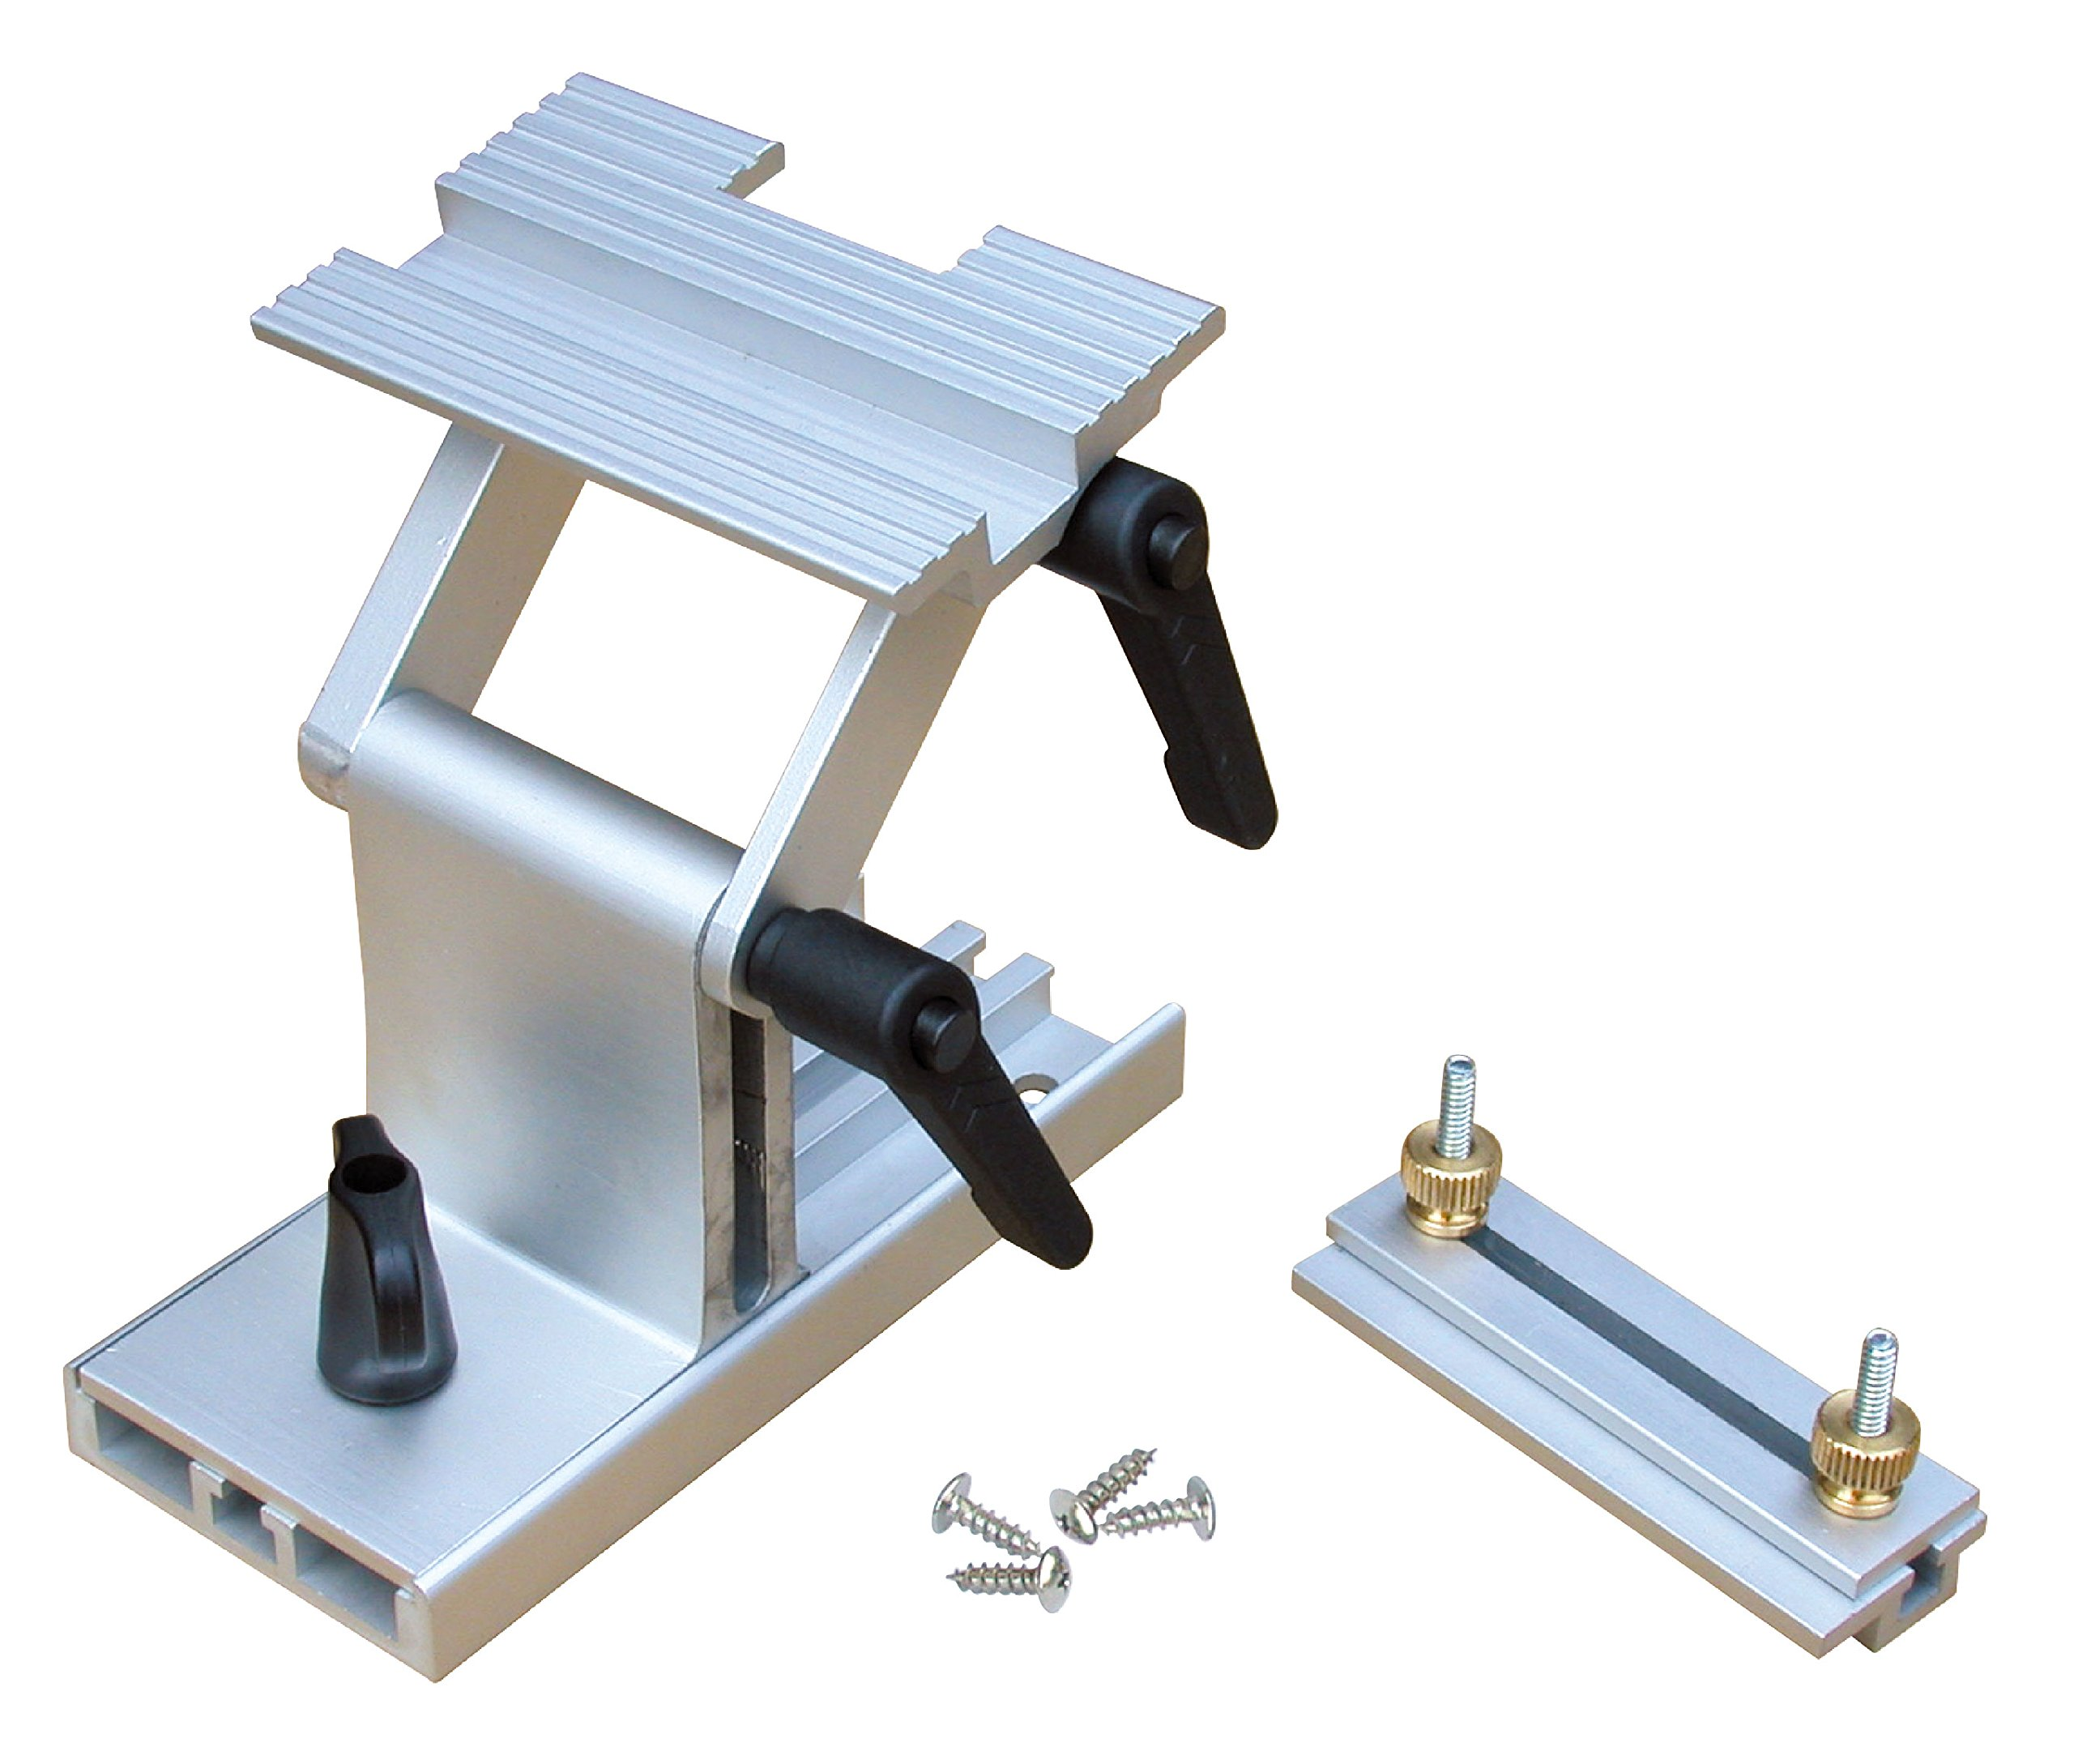 "Bench Grinder Replacement Sharpening Tool Rest Jig for 6"" and 8"" Grinders and Sanders BG by Taylor Toolworks (Image #1)"